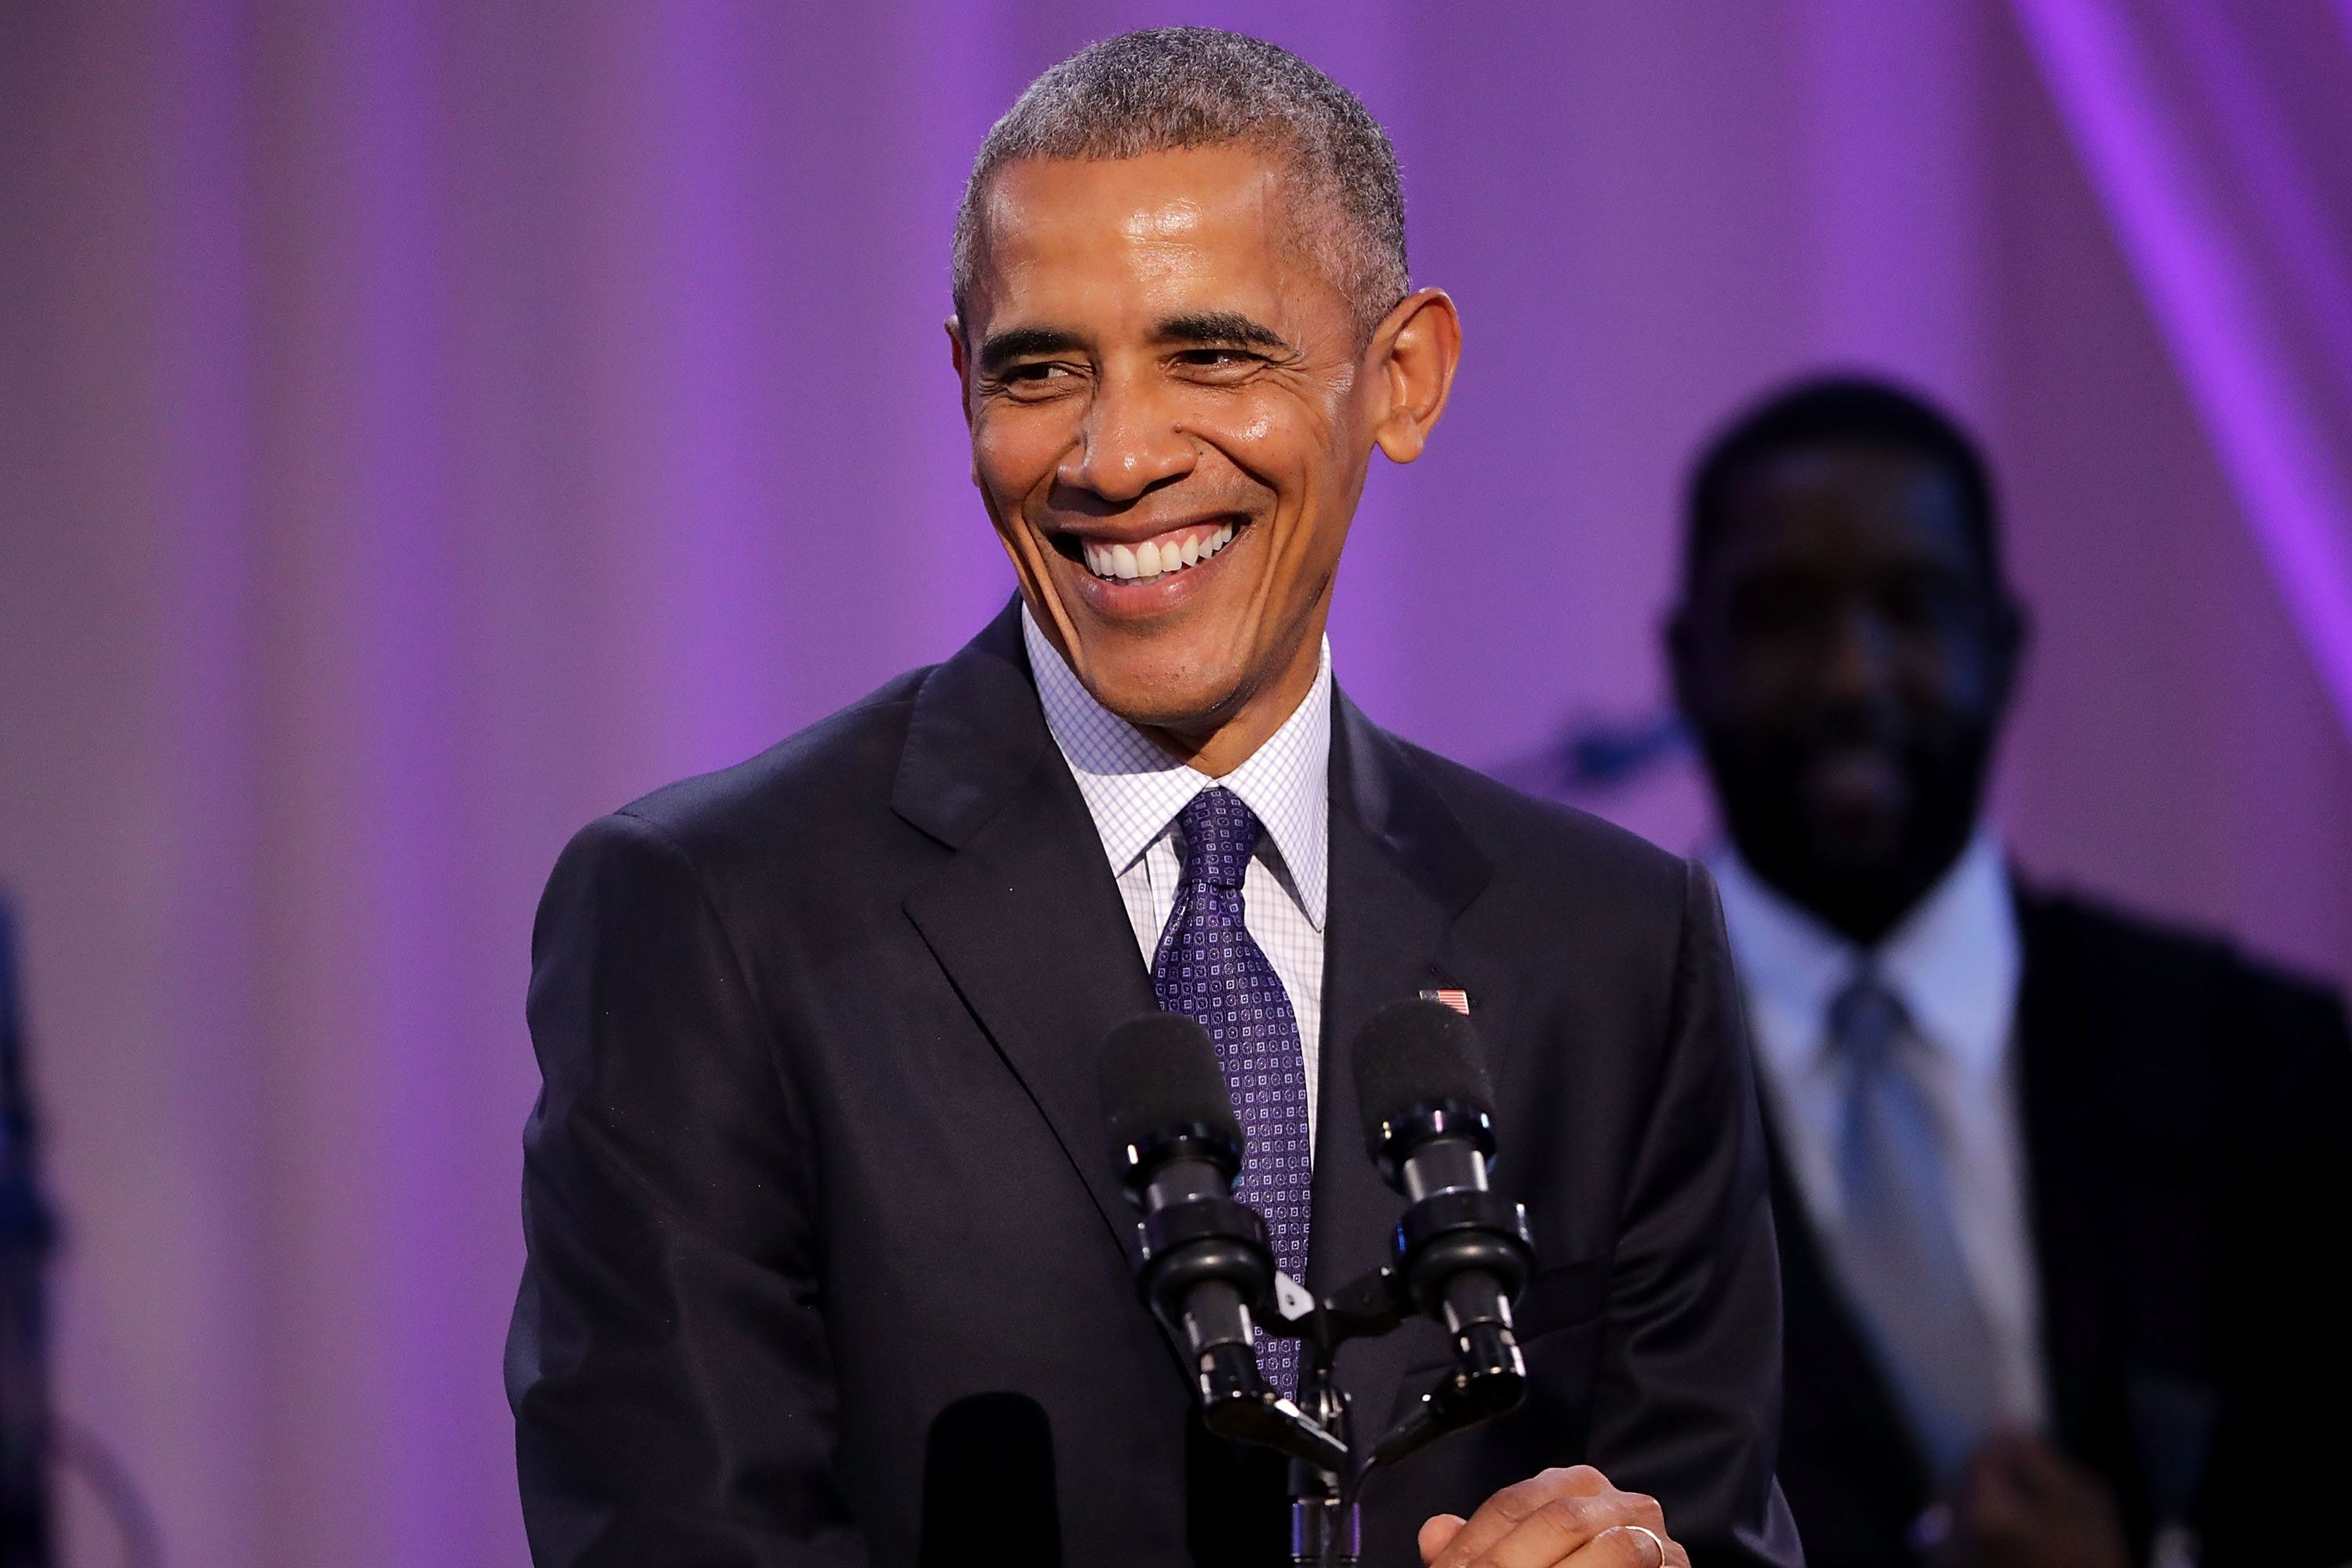 WASHINGTON, DC - OCTOBER 21:  U.S. President Barack Obama delivers remarks during the BET's 'Love and Happiness: A Musical Experience' in a tent on the South Lawn of the White House October 21, 2016 in Washington, DC. The show will feature performances by Usher, Jill Scott, Common, The Roots, Bell Biv DeVoe, Janelle Monae, De La Soul, Yolanda Adams, Michelle Williams and Kiki Sheard, along will appearances by actors Samuel L. Jackson, Jesse Williams and Angela Bassett.  (Photo by Chip Somodevilla/Getty Images)